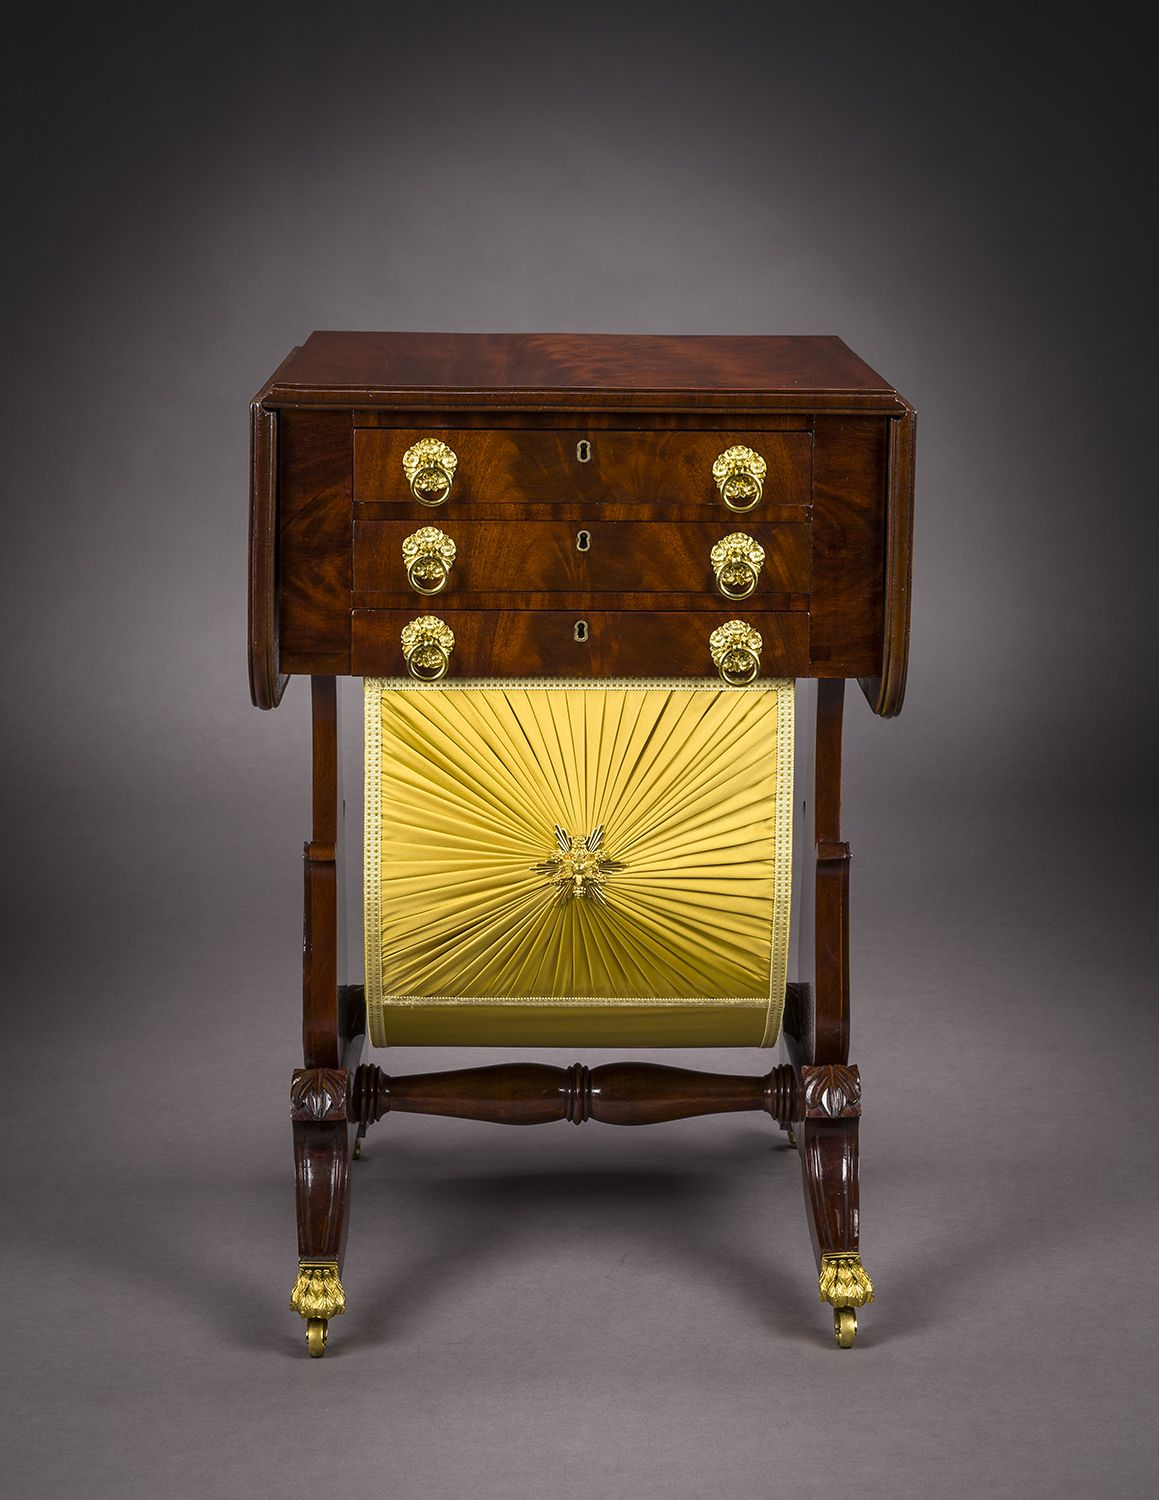 Neo-Classical Drop-Leaf Work Table with Lyre Ends, about 1828–29. Attributed to Rufus Pierce, Boston. Mahogany, with gilt-brass paw toe-caps and castors, drawer pulls, key-hole escutcheons, baize writing surface, and fabric on workbox, 28 13/16 in. high, 19 1/2 in. wide, 20 1/8 in. deep (at the castors). Frontal view.